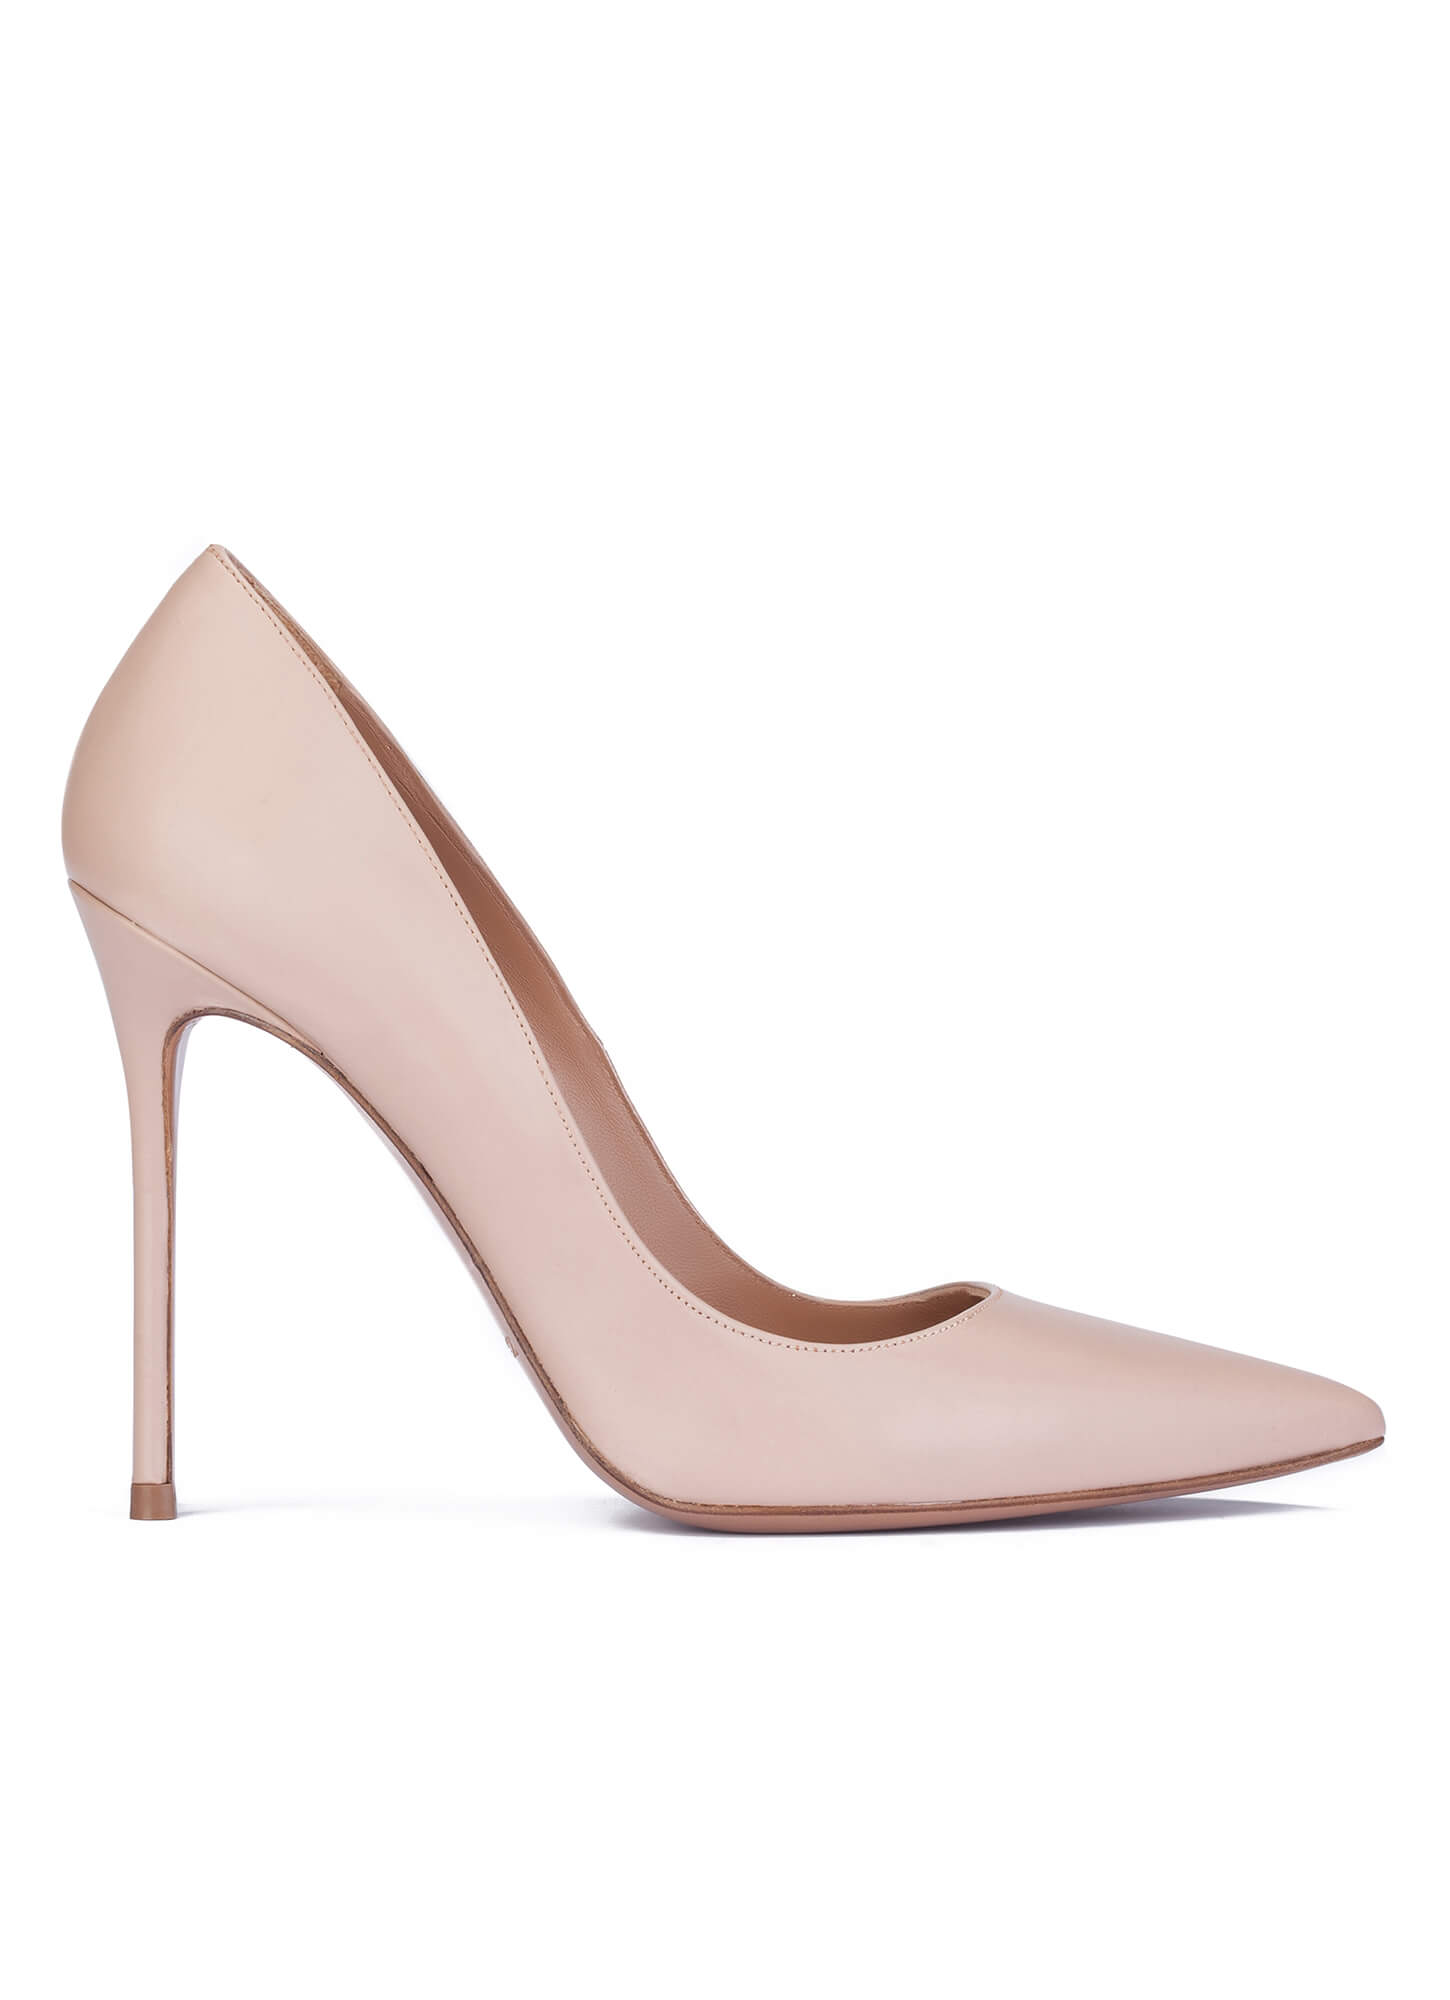 7a466ca62443 Heeled pumps in nude leather - online shoe store Pura Lopez . PURA LOPEZ